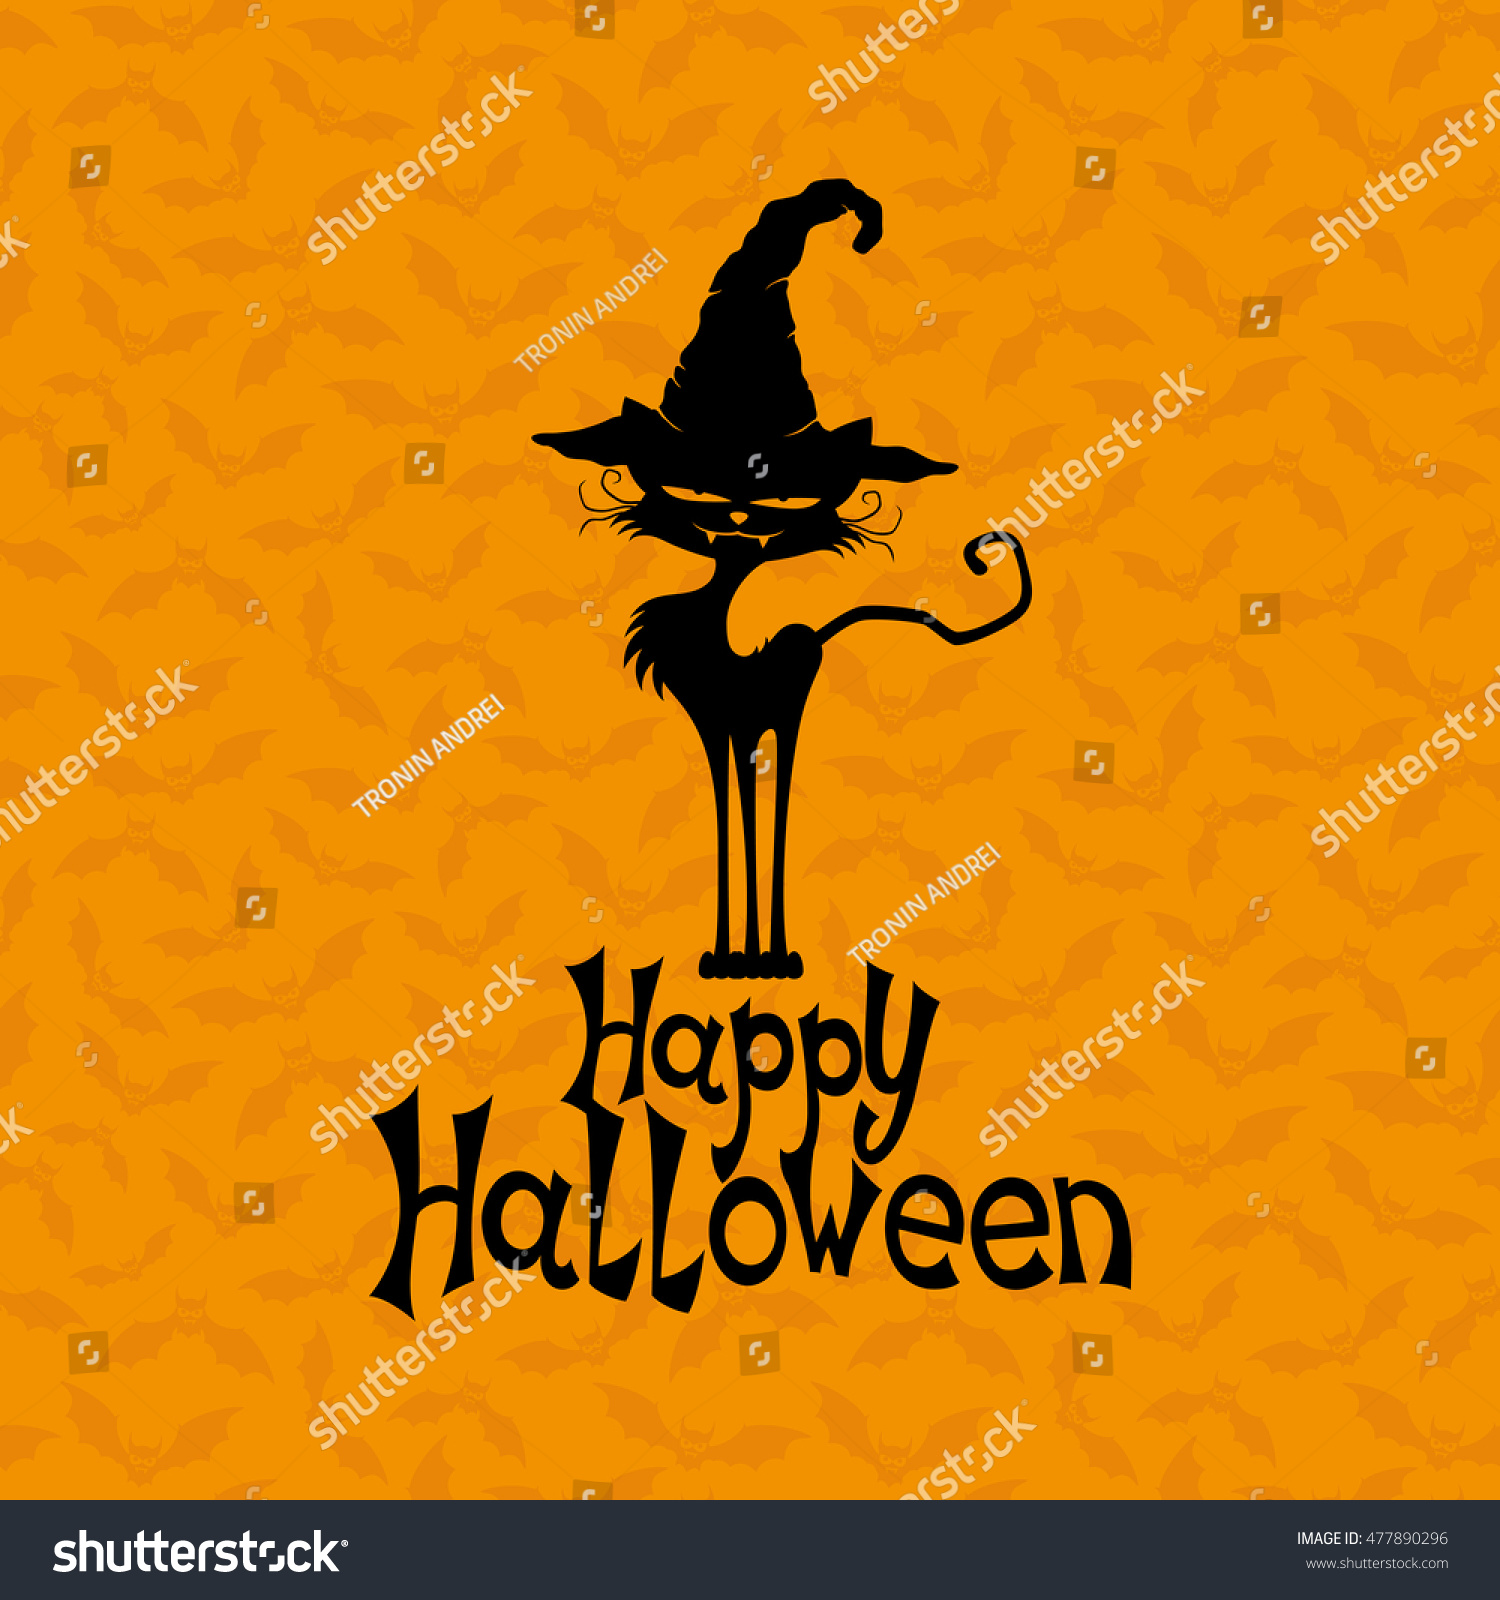 black cat happy halloween wishes stock vector (royalty free